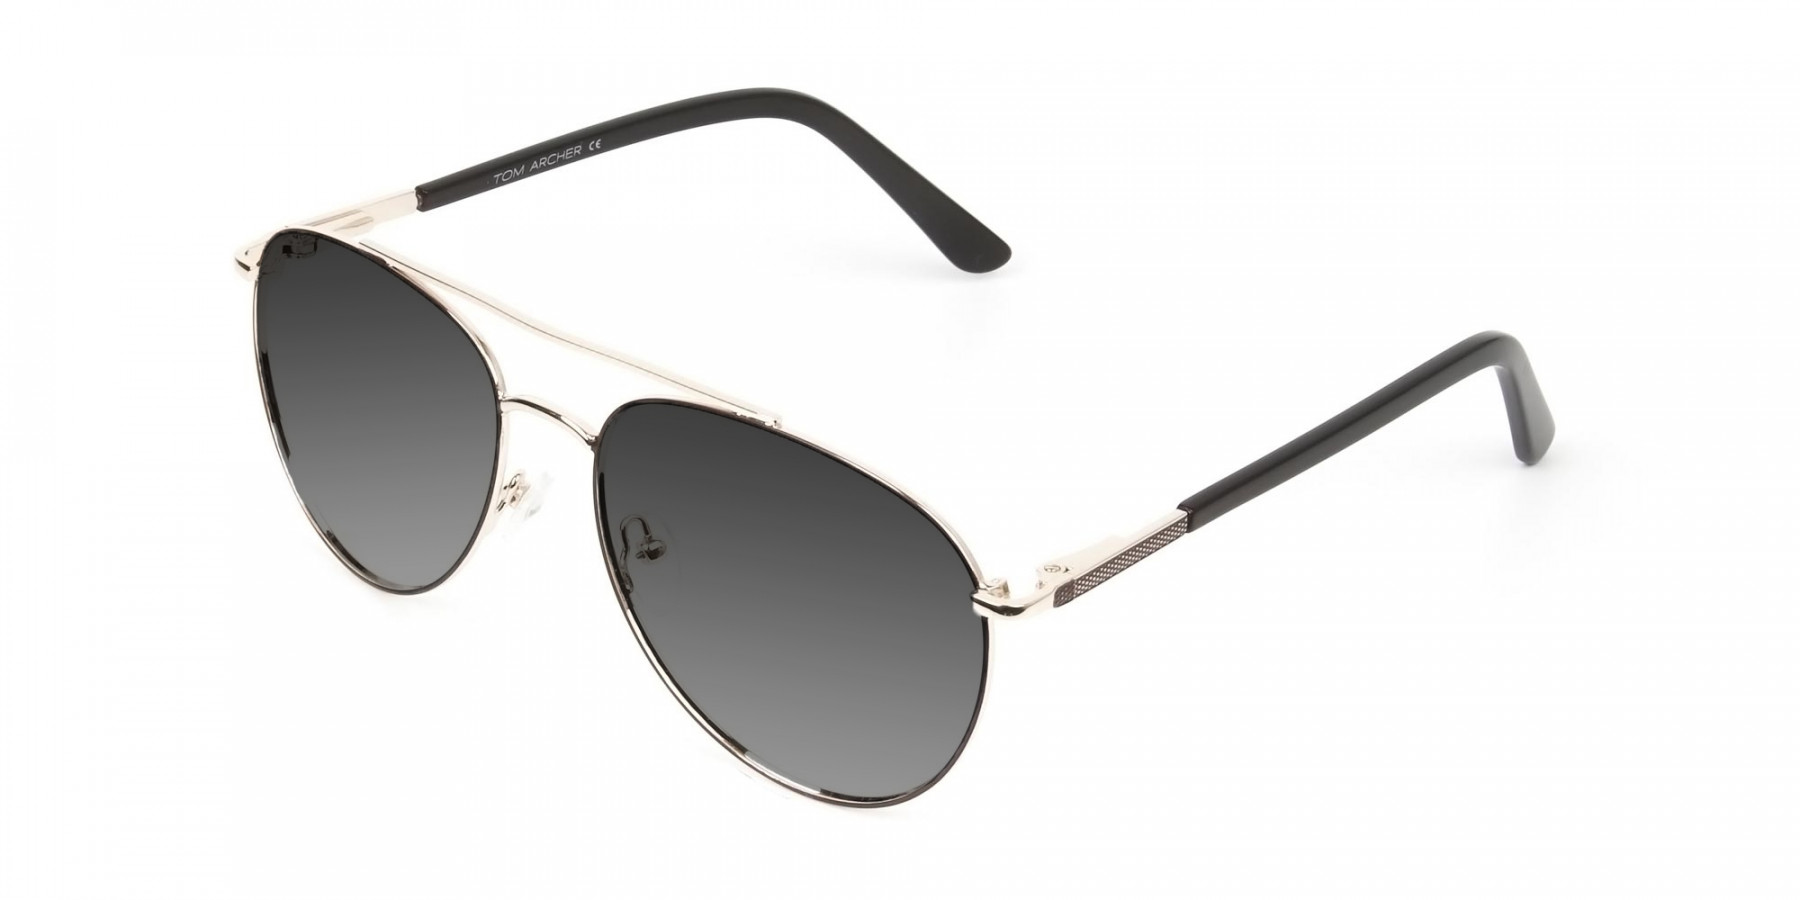 ultralight-brown-gold-aviator-grey-tinted-sunglasses-frames-3